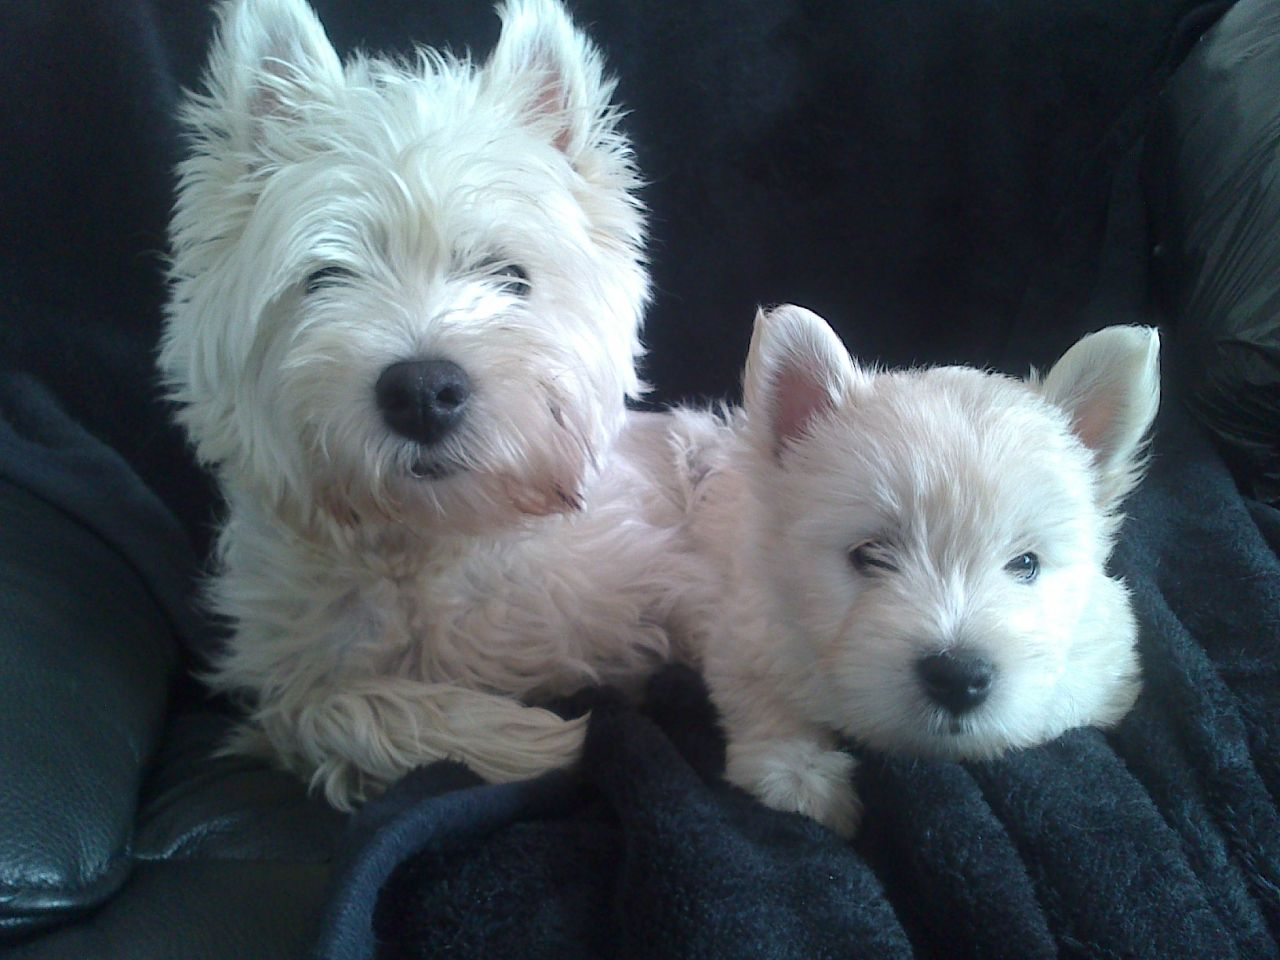 Westie Puppies For Sale Uk 1280x960 Wallpaper Teahub Io